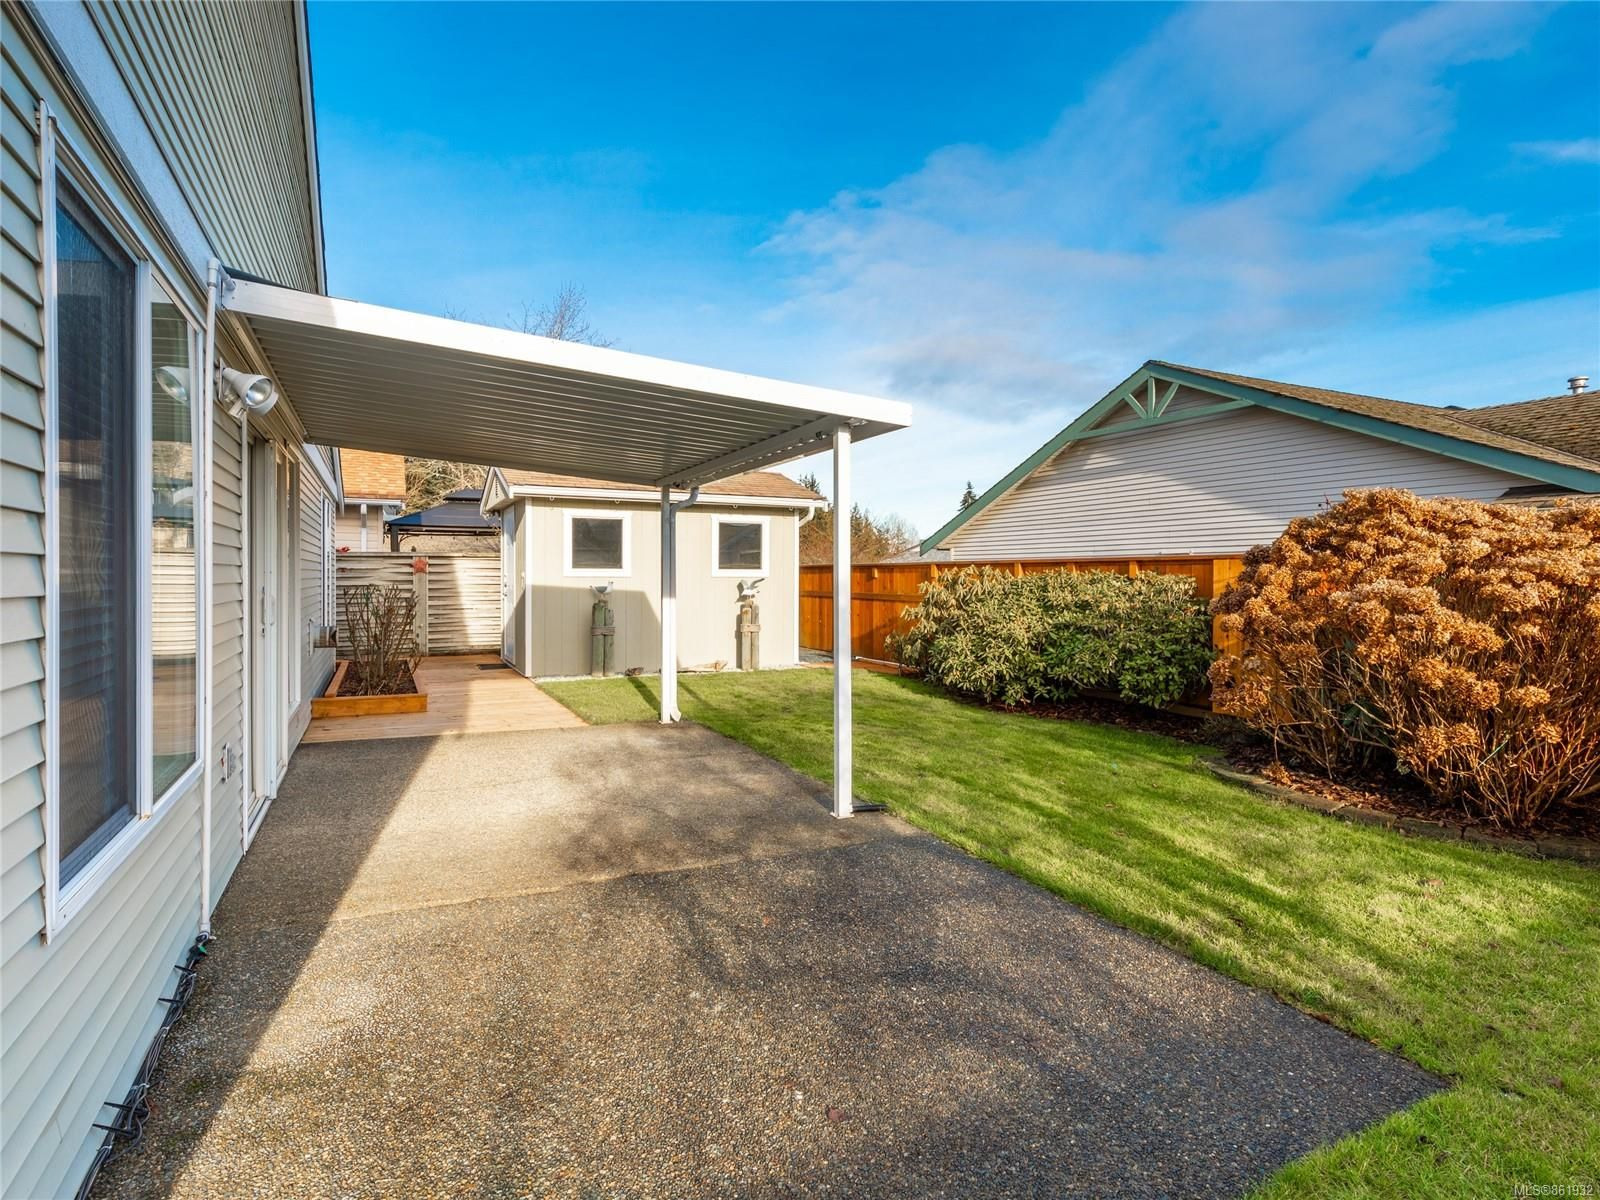 Photo 12: Photos: 300 Church Rd in : PQ Parksville House for sale (Parksville/Qualicum)  : MLS®# 861932